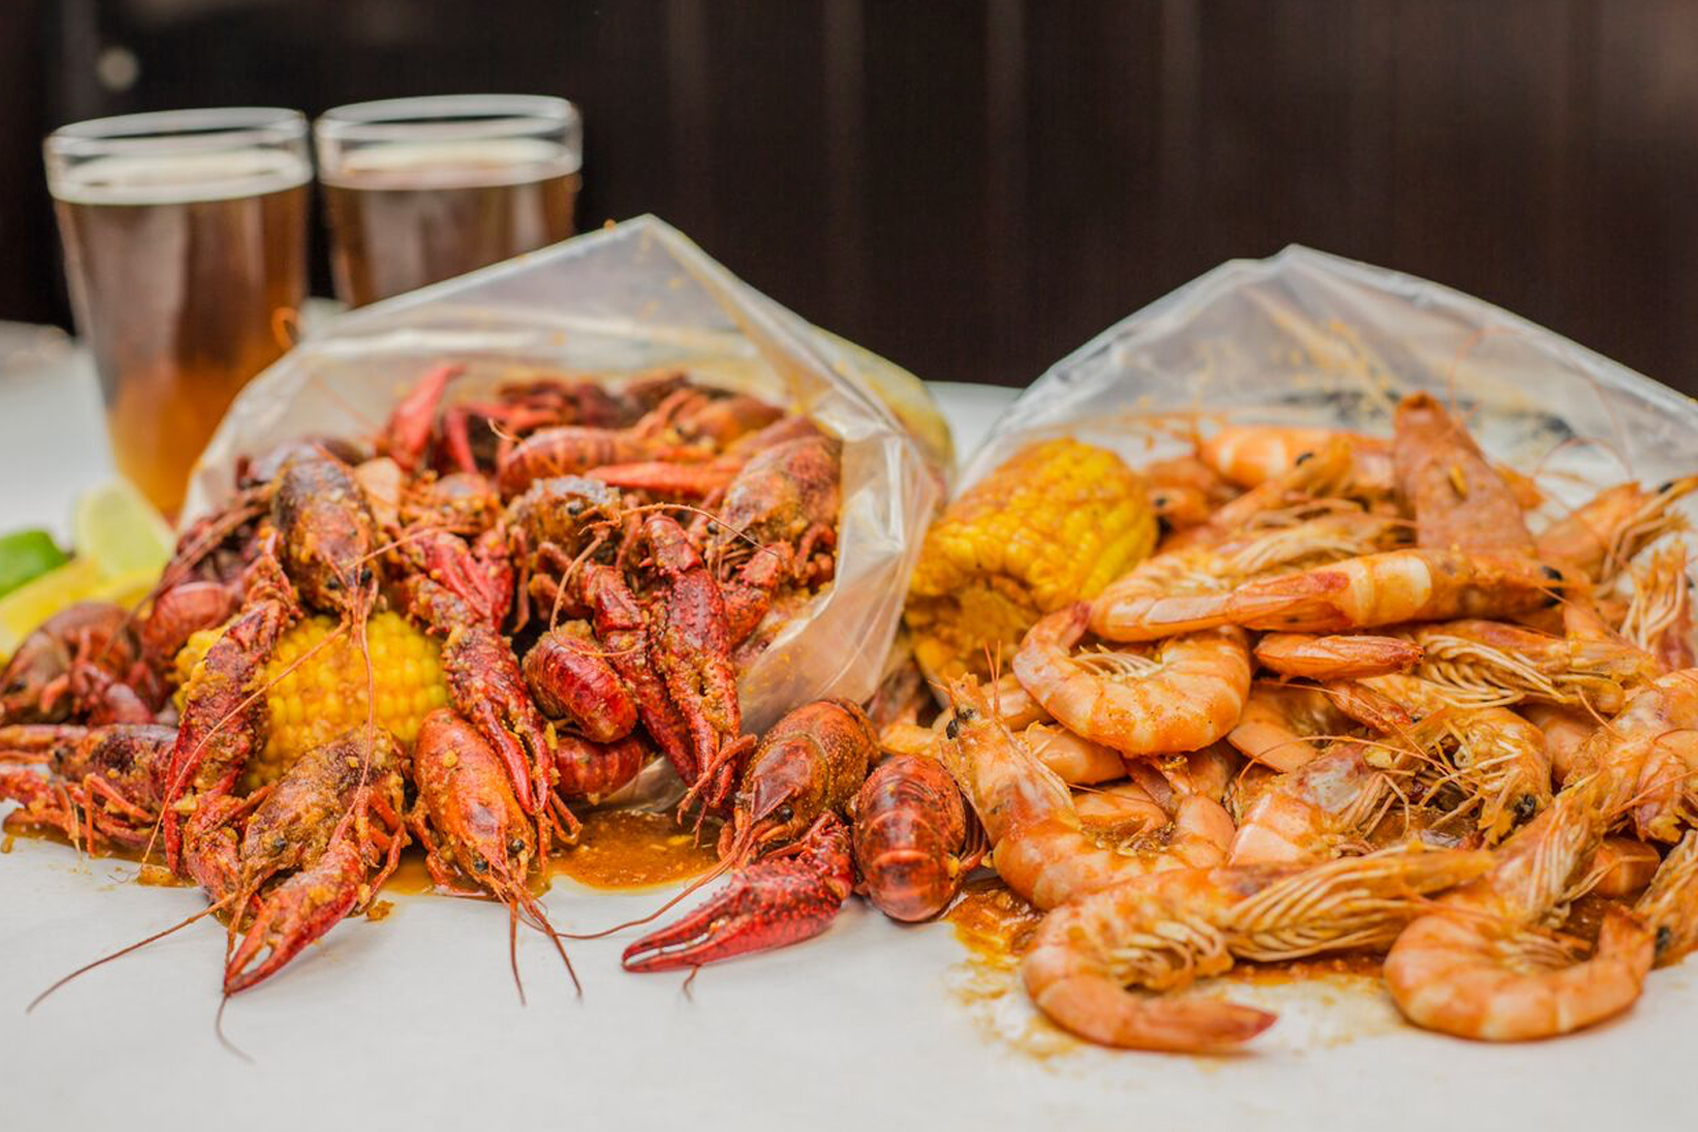 Smells like 'Hot N Juicy' in Here! | Hot N Juicy Crawfish